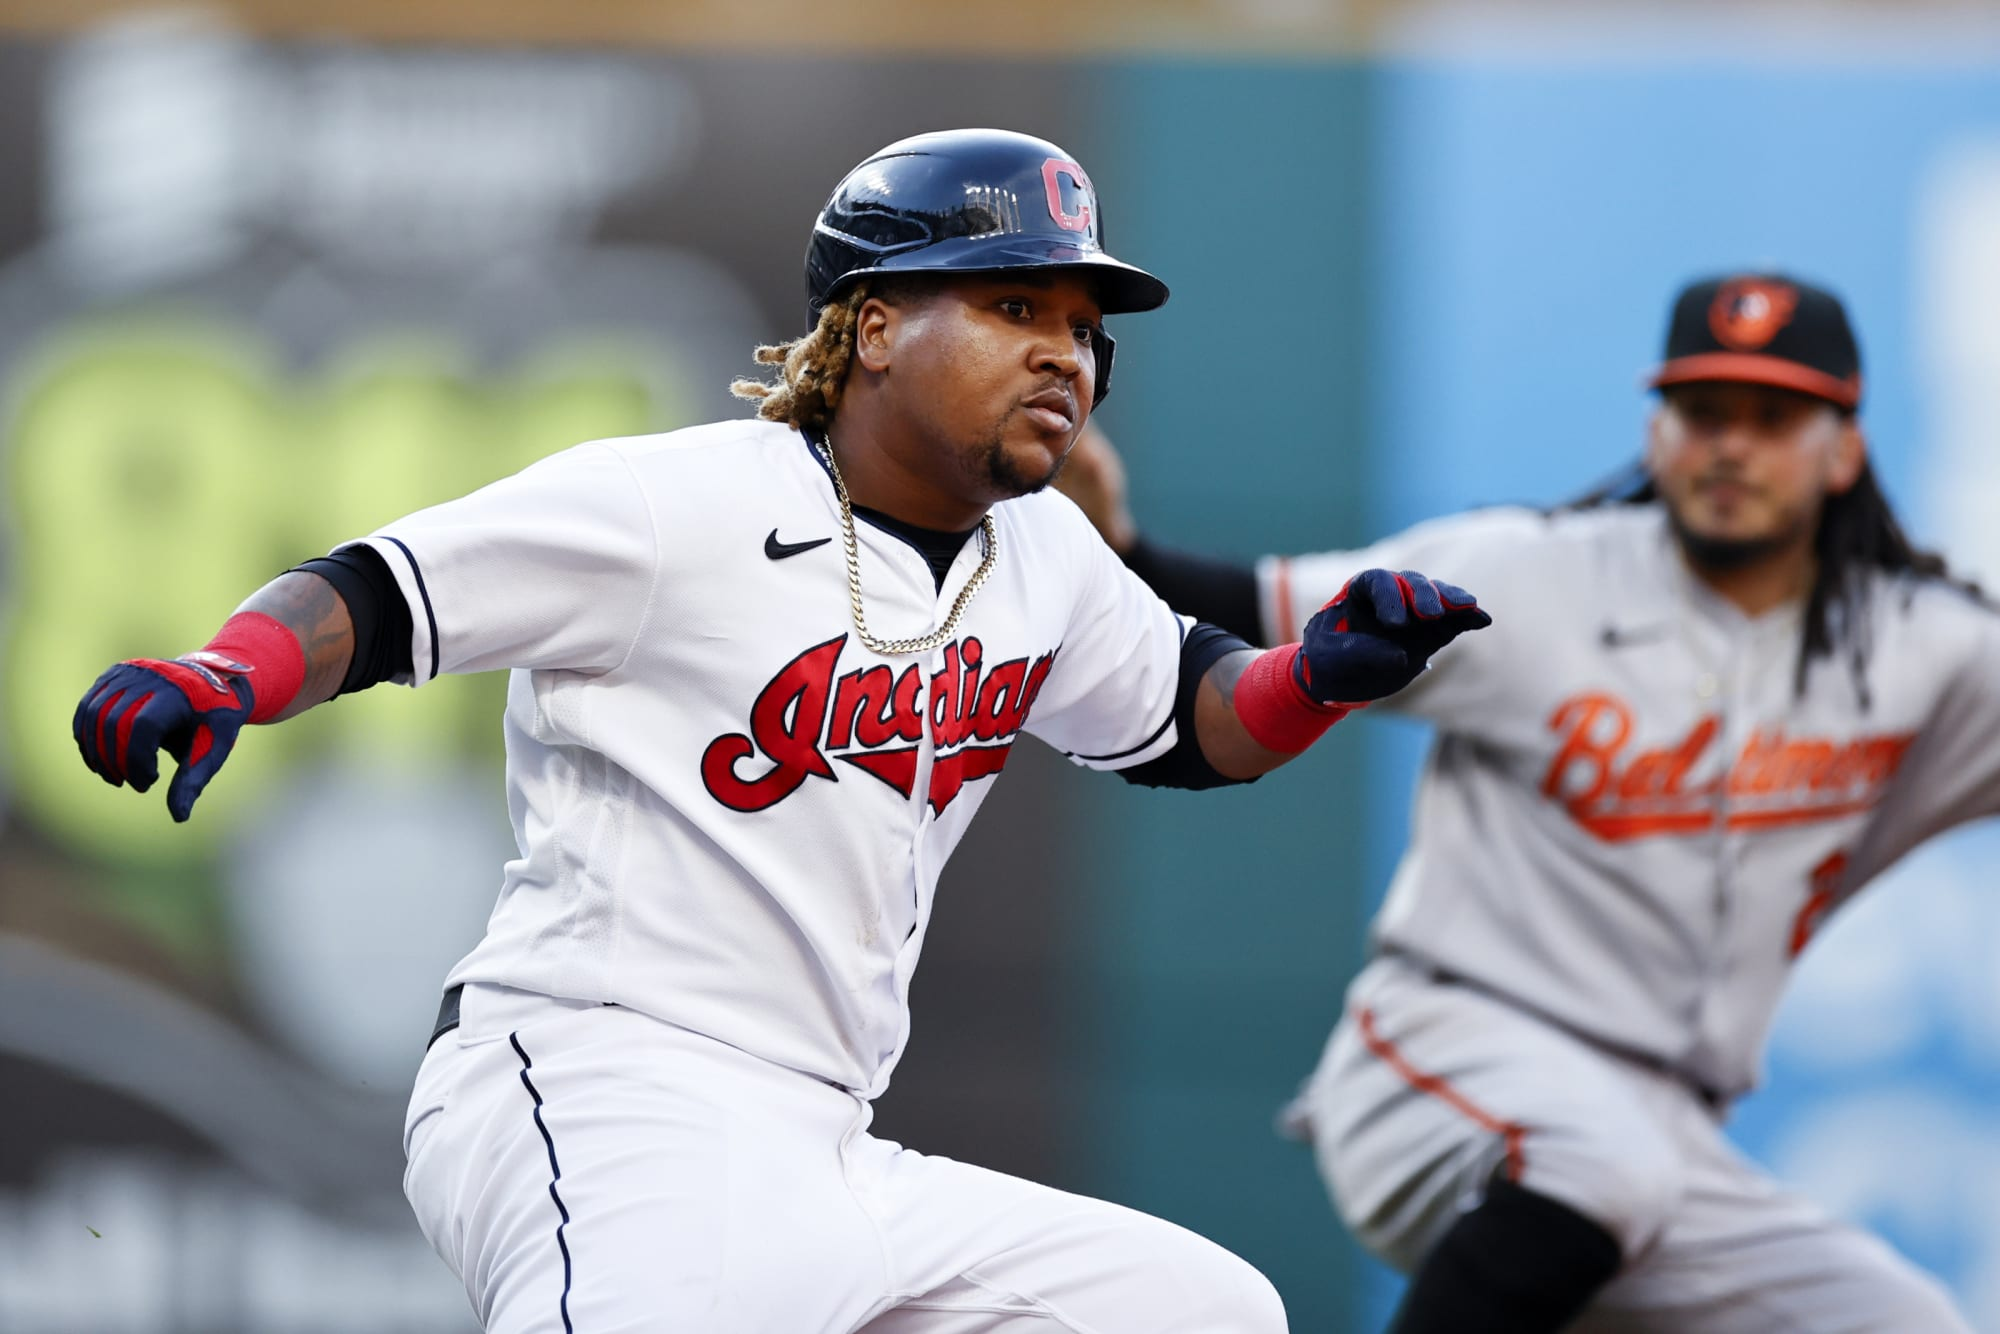 Watch: The Indians saw Jose Ramirez outrun the Orioles on the base paths